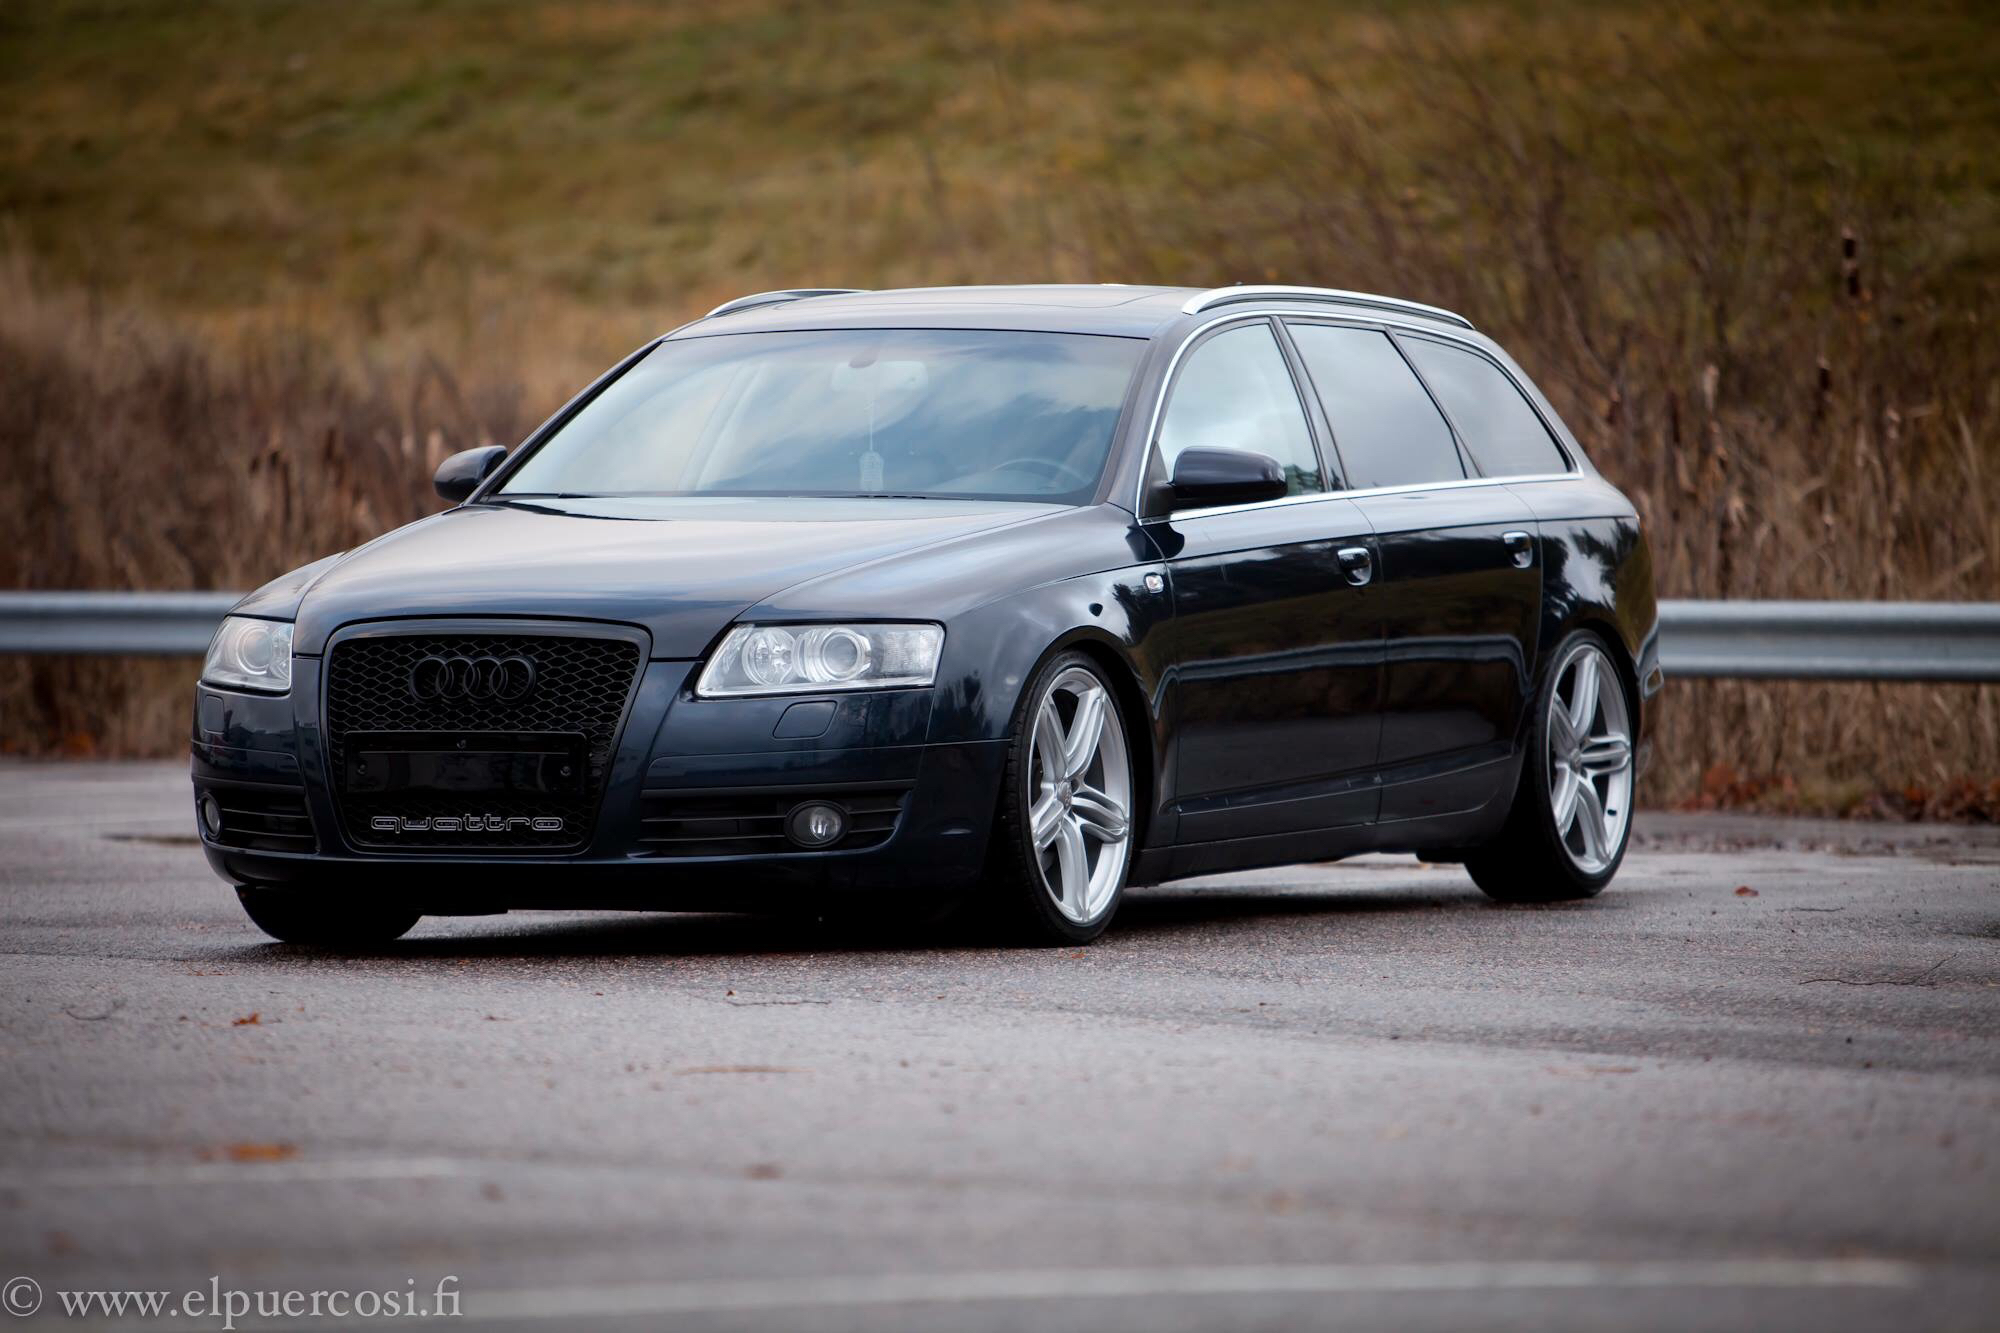 2007 audi a6 avant 3 0tdi quattro. Black Bedroom Furniture Sets. Home Design Ideas